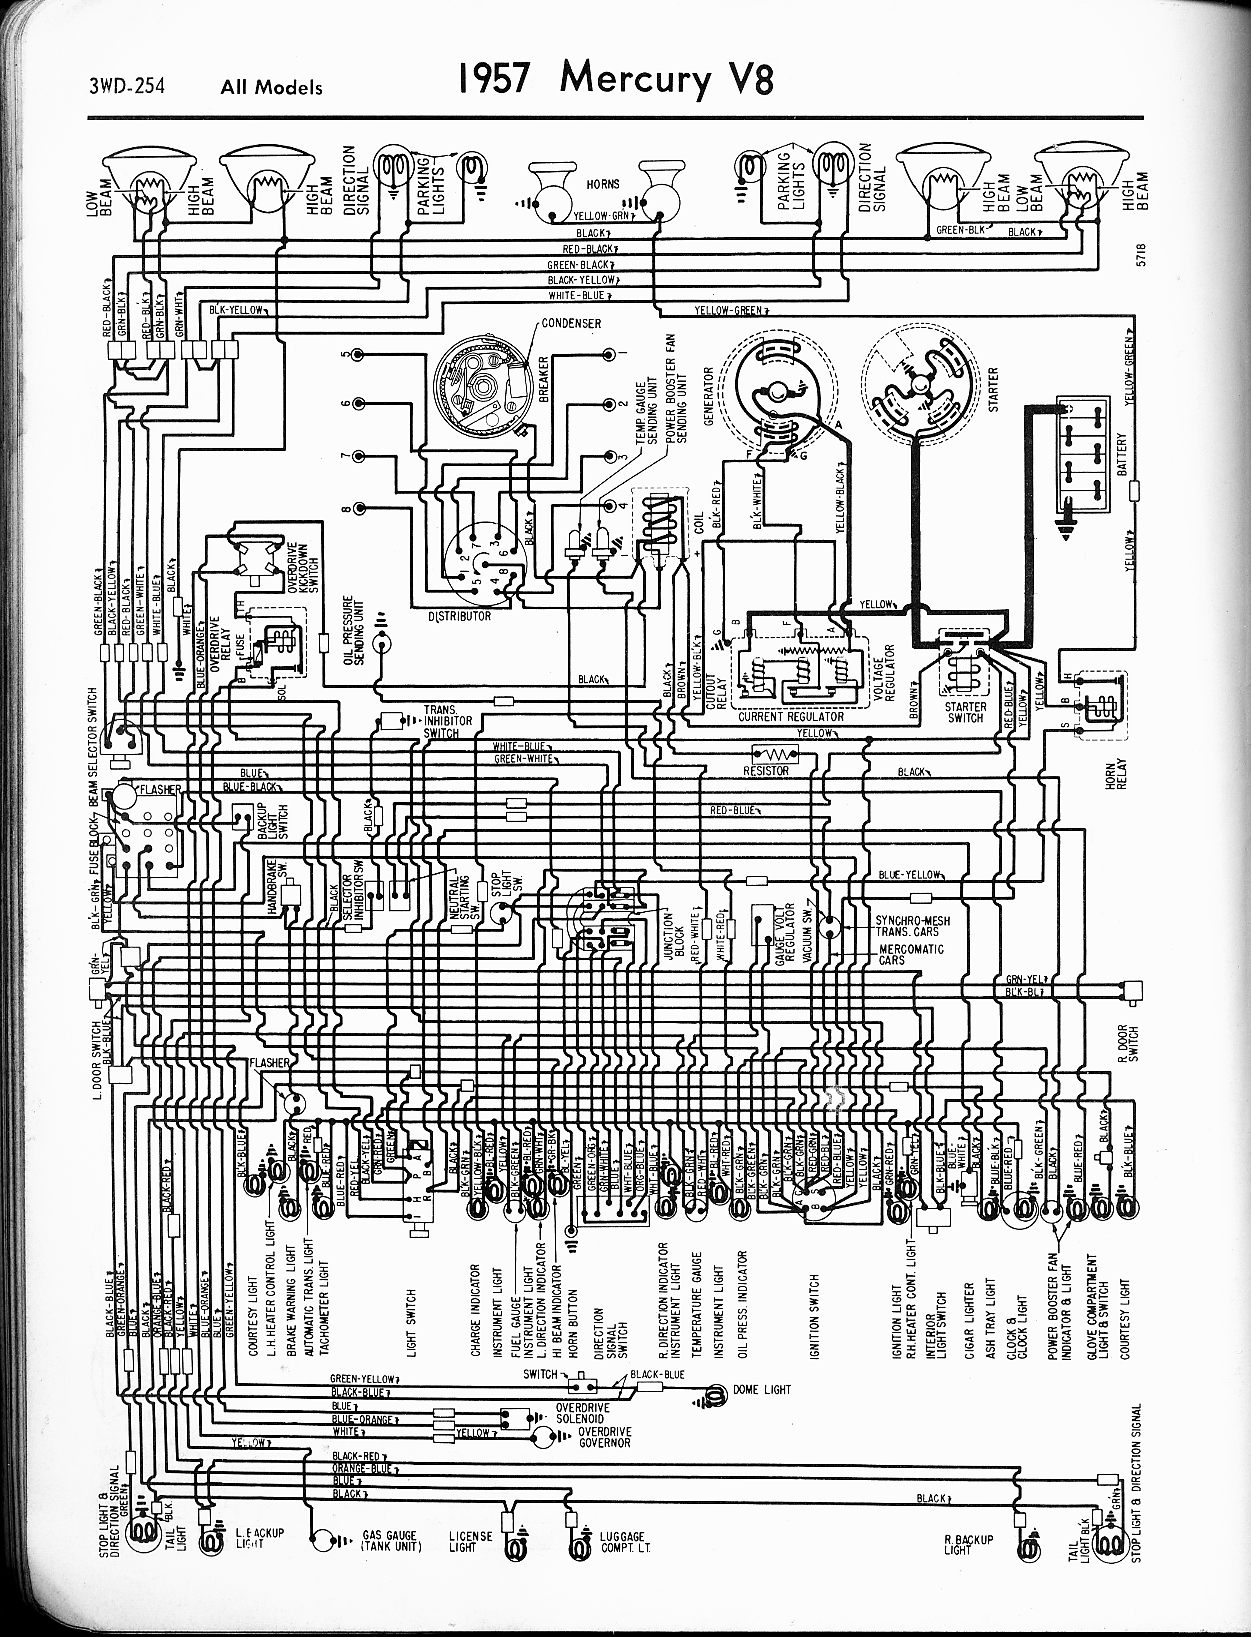 1956 mercury wiring diagram 27 wiring diagram images